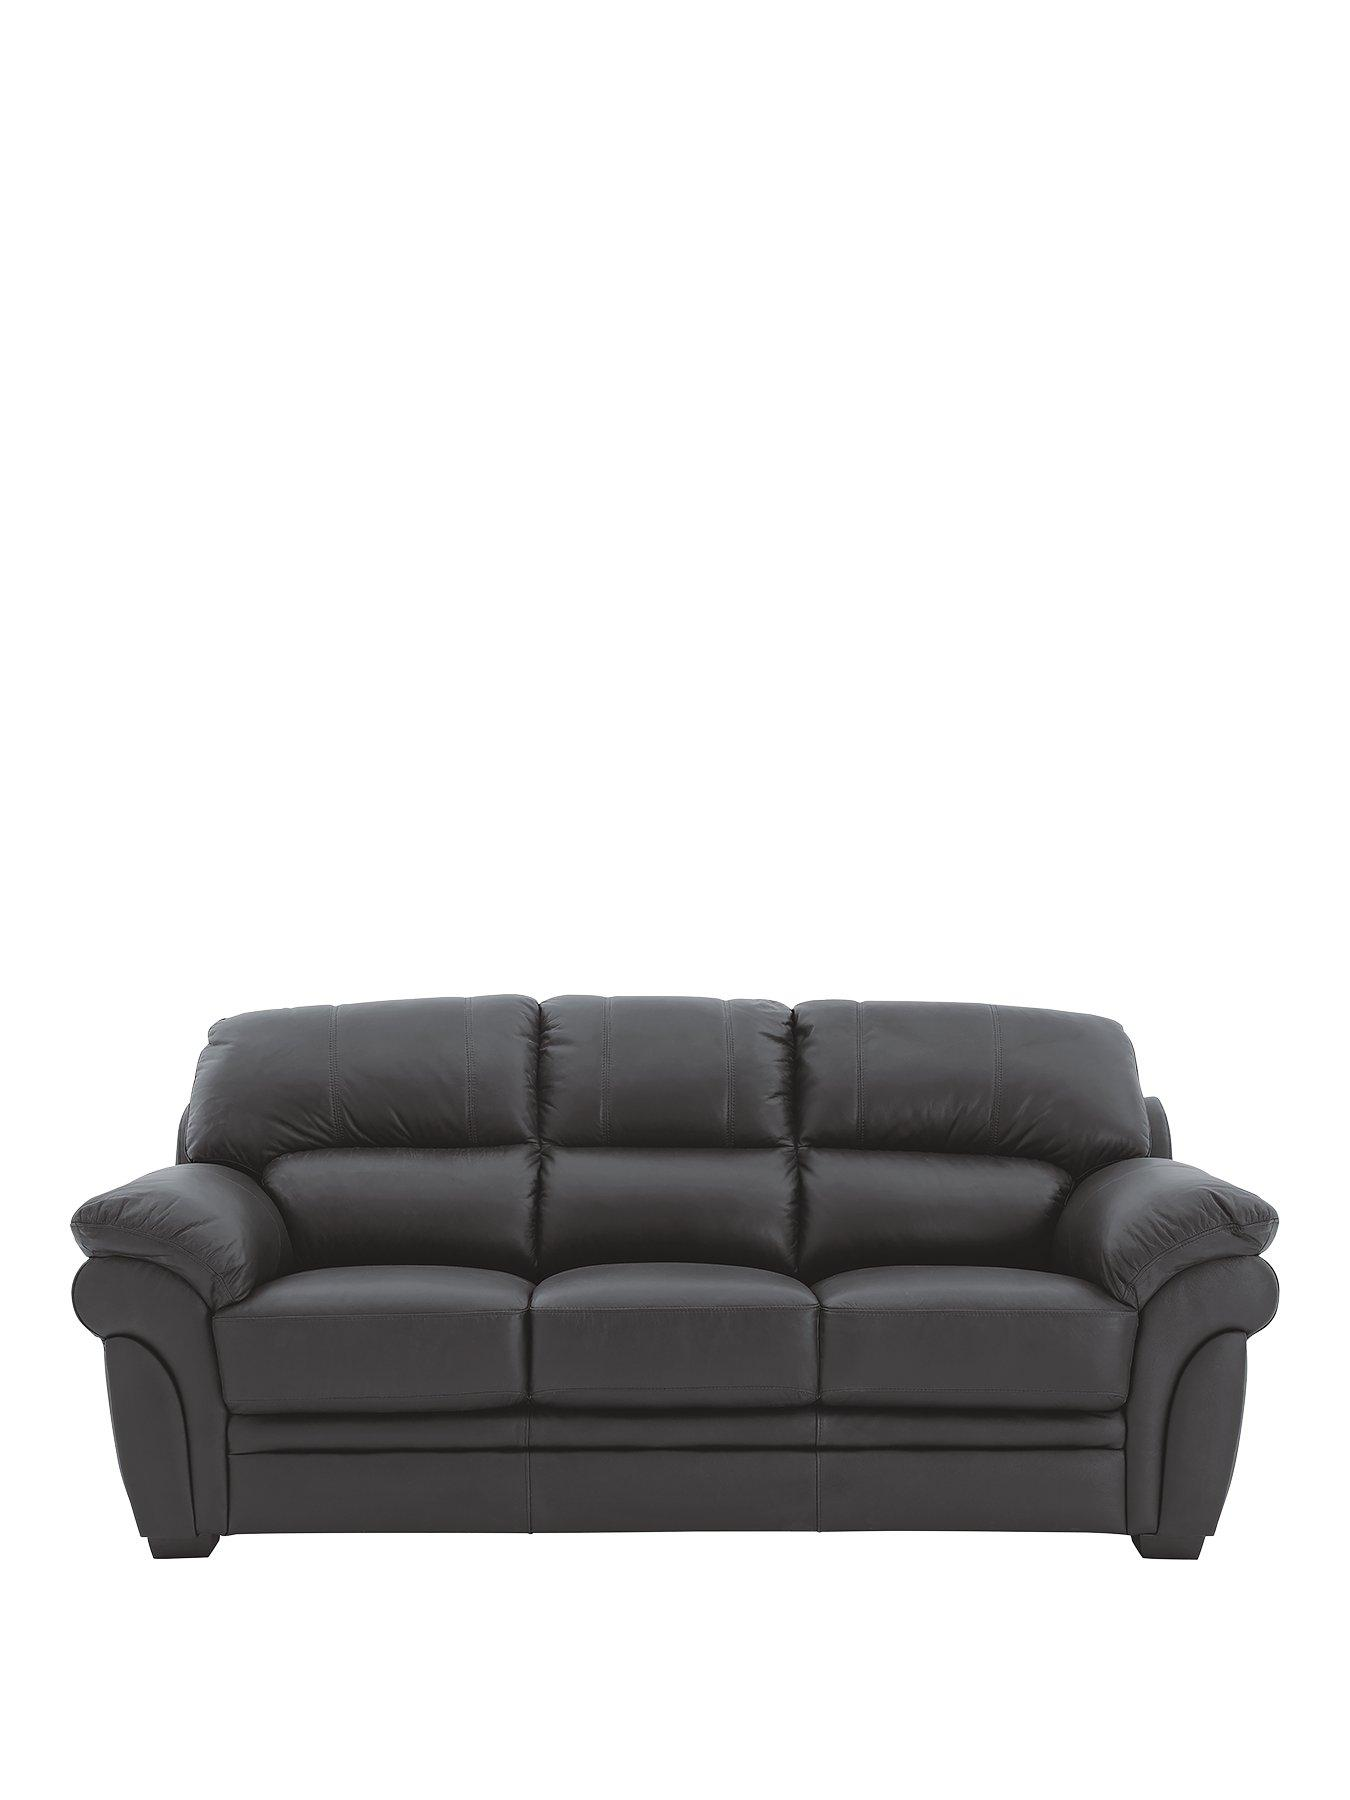 the leather sofa company uk how to clean a with dove soap portland 3 seater very co